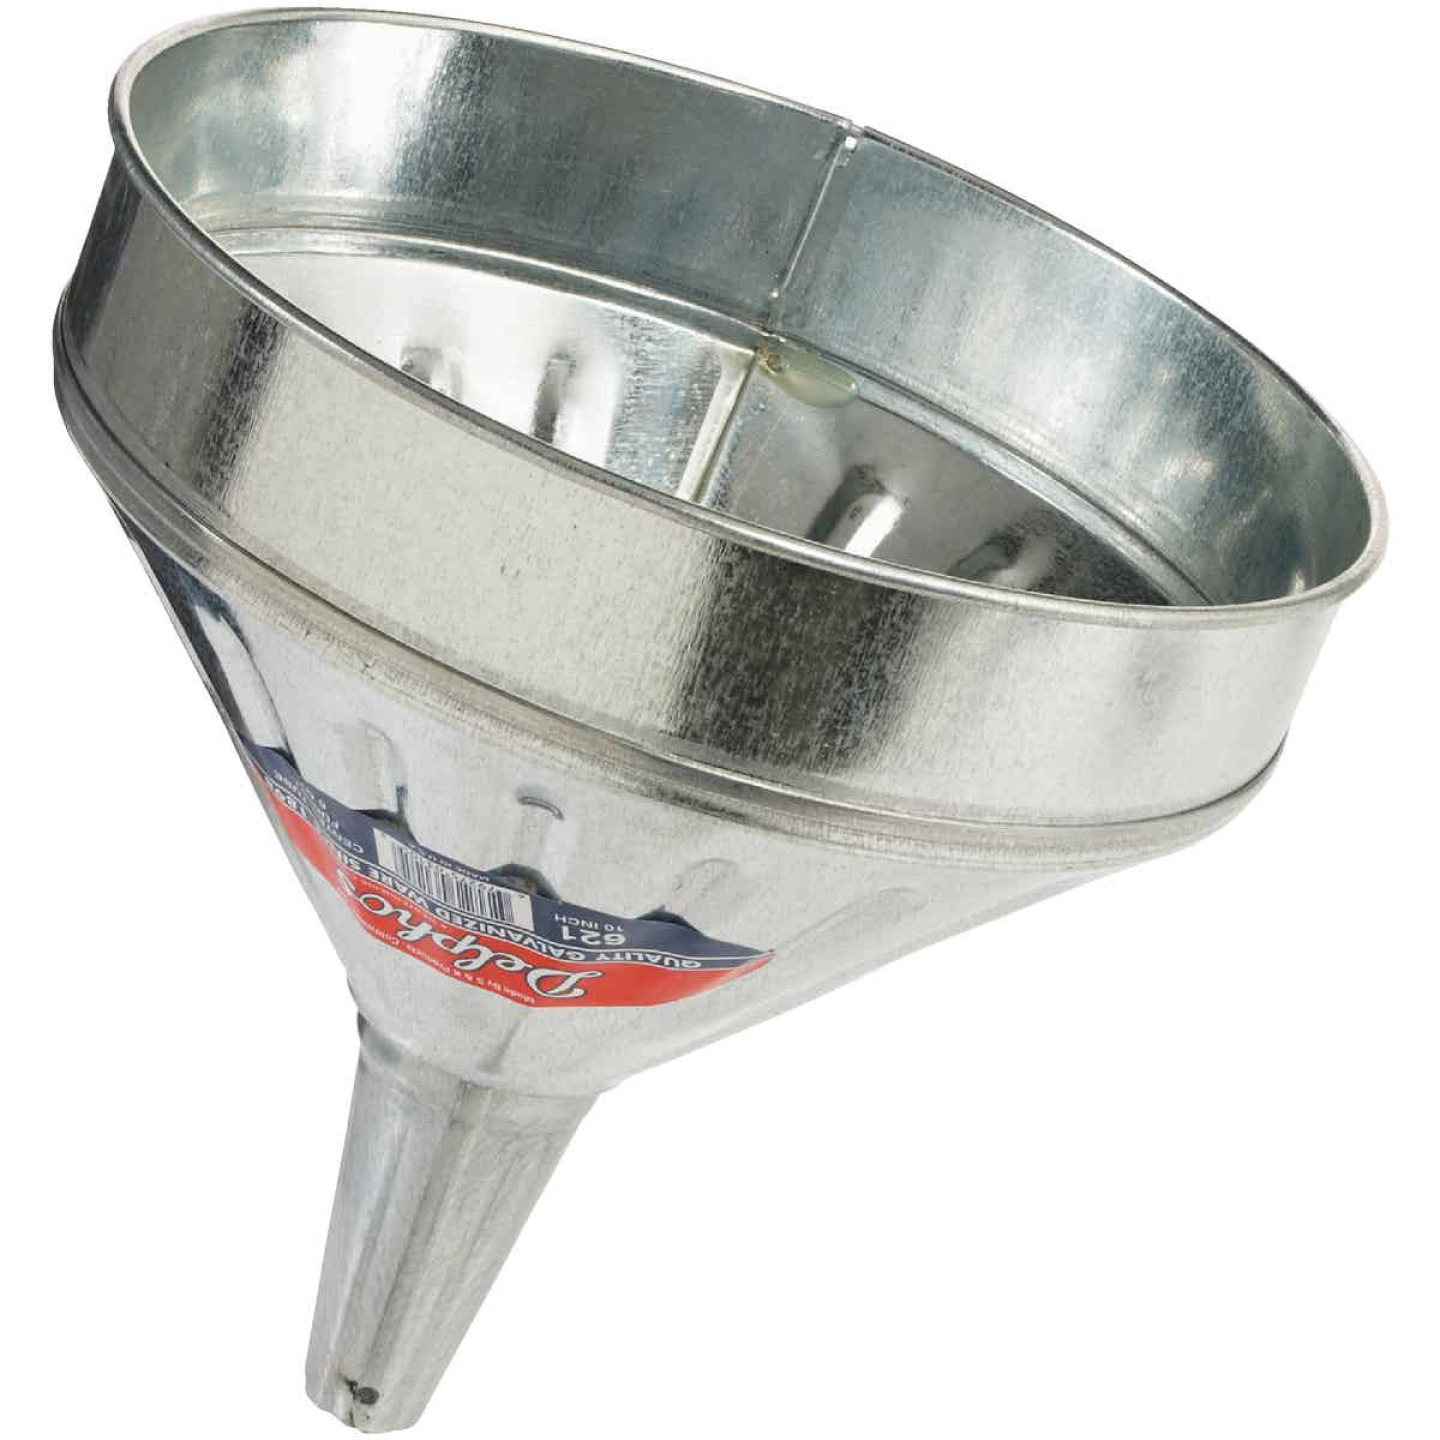 Delphos Heavy-Duty 6 Qt. Galvanized Steel Funnel with Center Spout Image 1